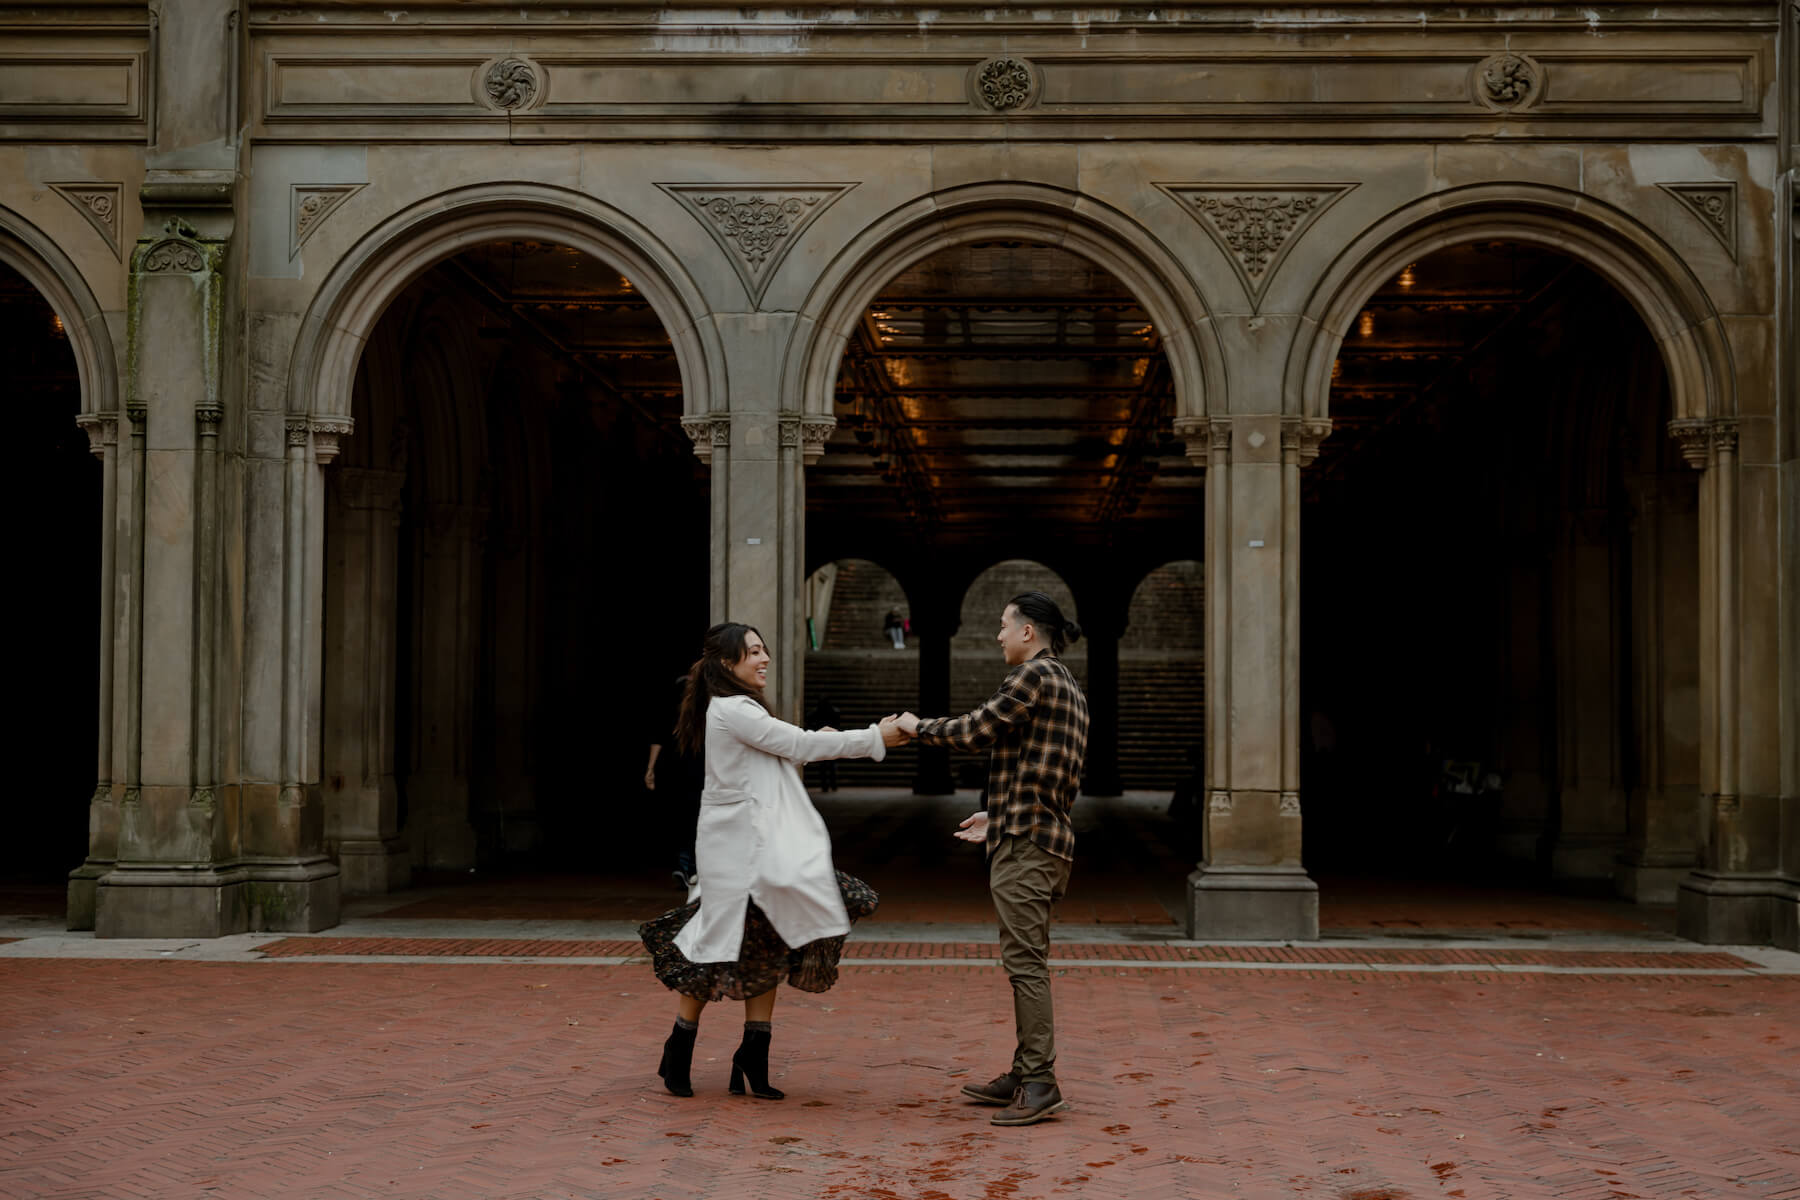 couple in Central Park, NYC dancing